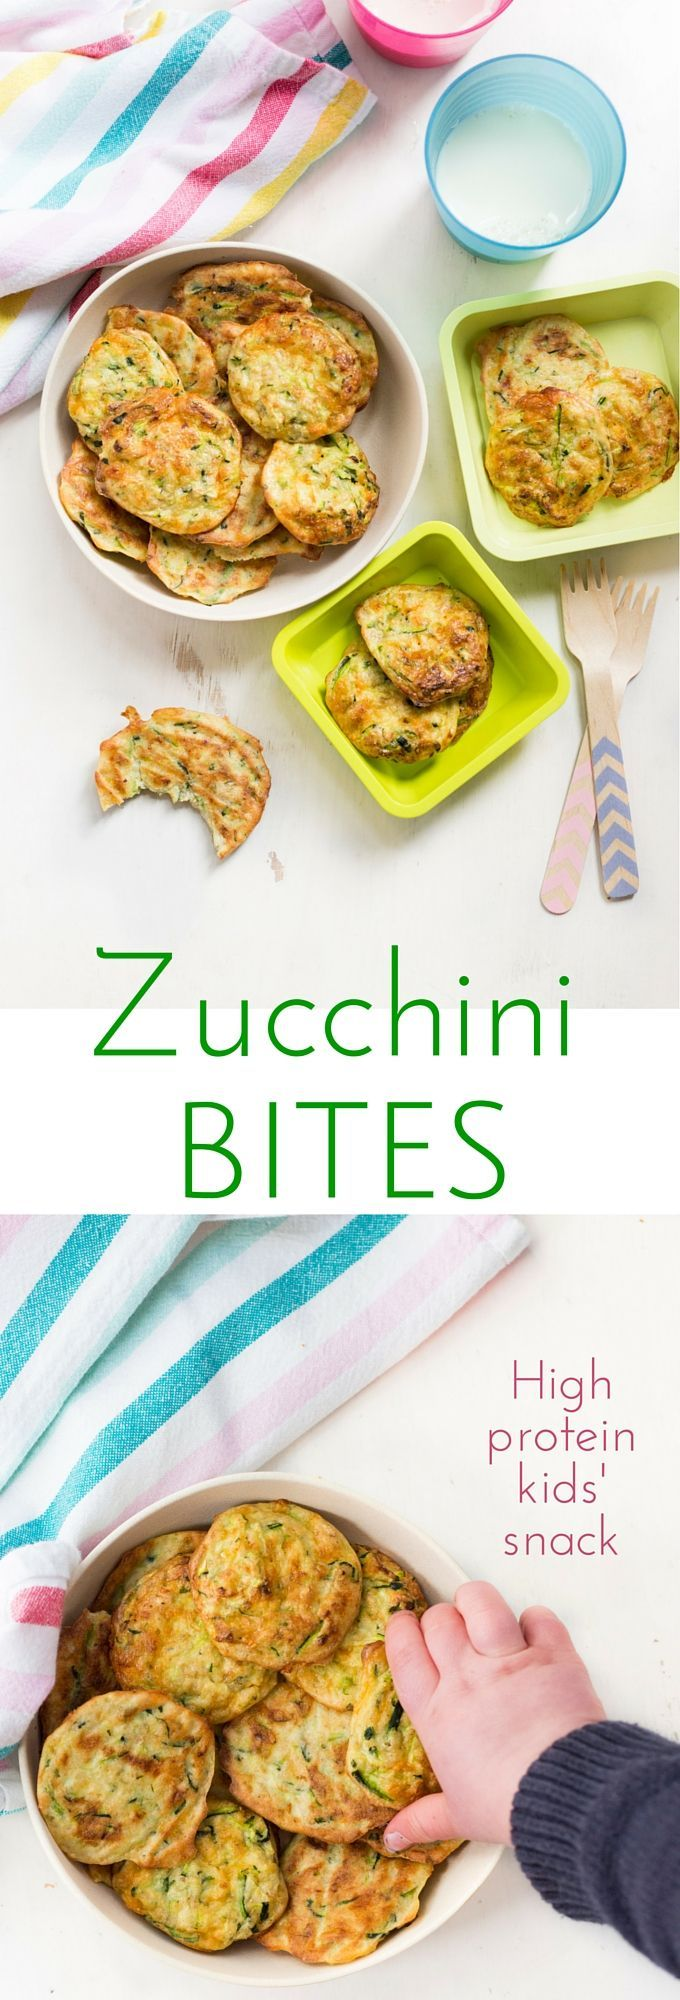 zucchini bites courgette bites are a high protein snack. Black Bedroom Furniture Sets. Home Design Ideas